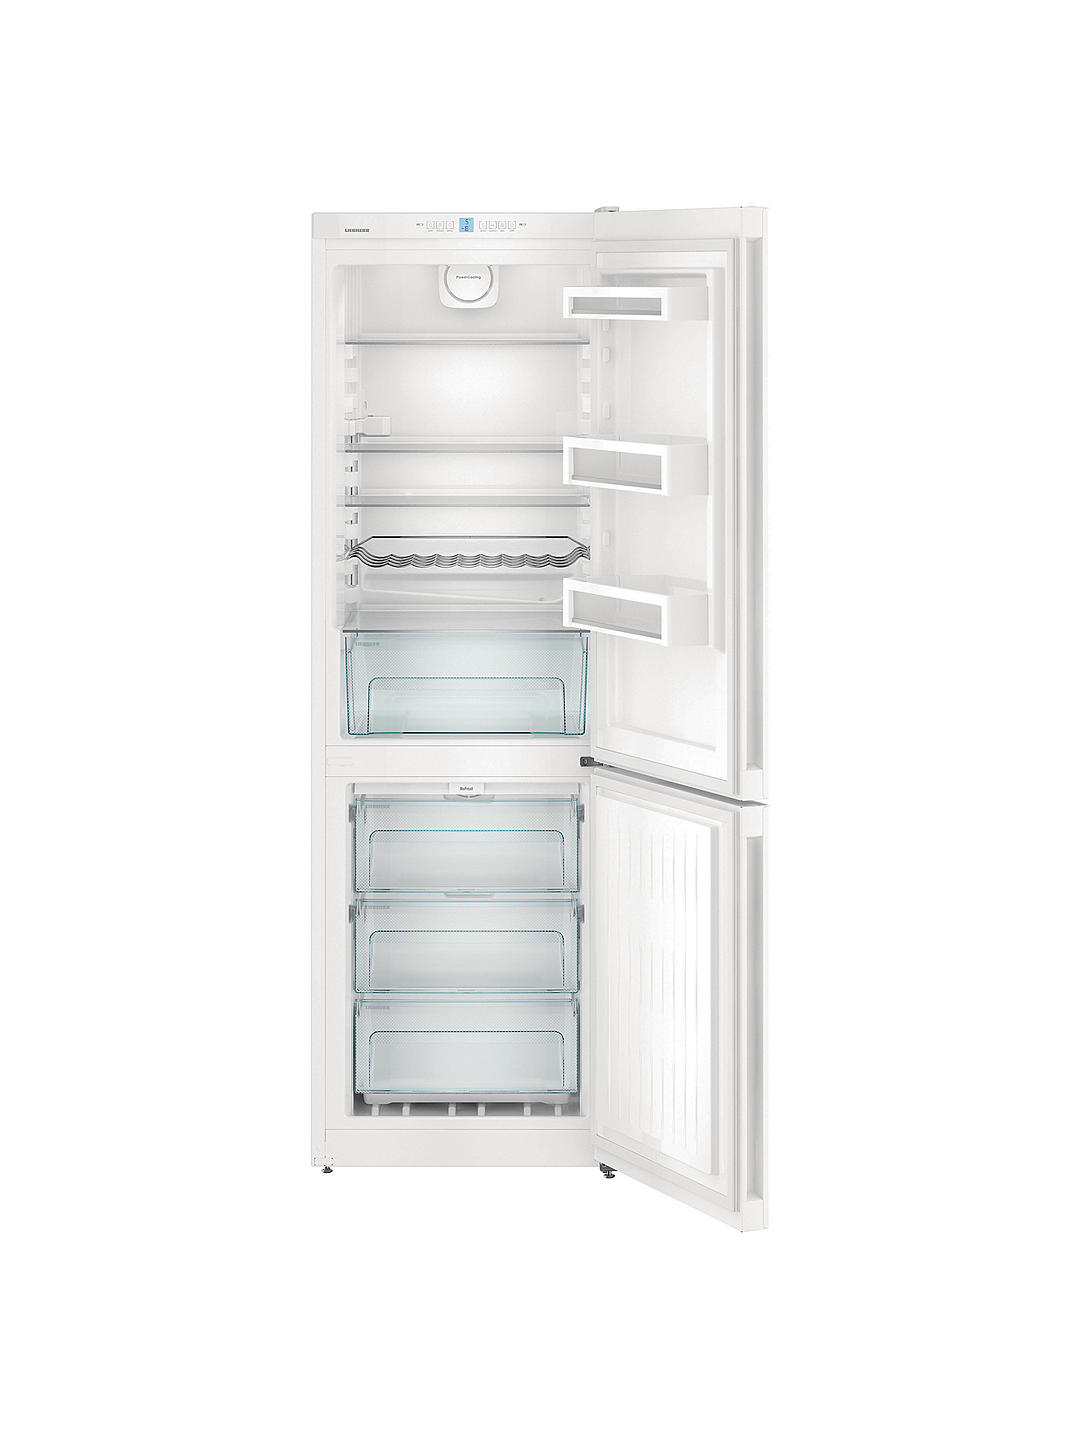 Buy Liebherr CNP4313 Freestanding 60/40 Fridge Freezer, A+++ Energy Rating, 60cm Wide, White Online at johnlewis.com